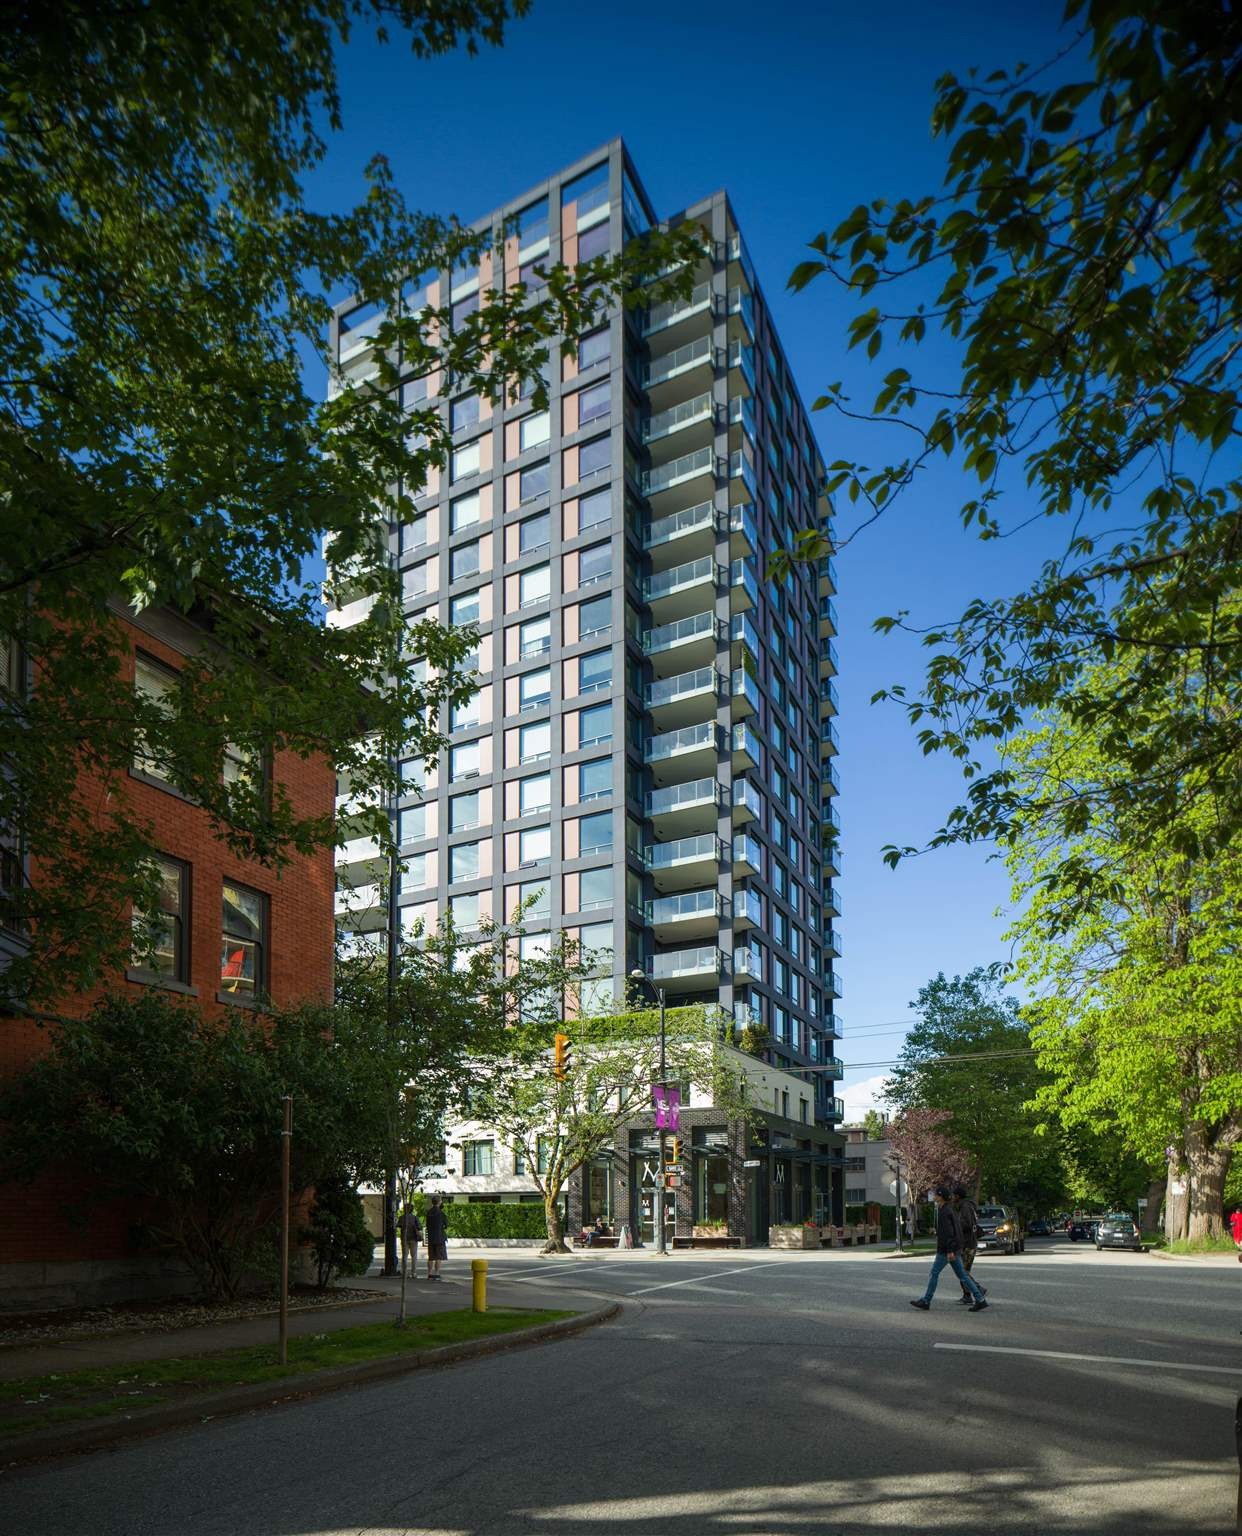 403 1171 JERVIS STREET - West End VW Apartment/Condo for sale, 2 Bedrooms (R2591528) - #28